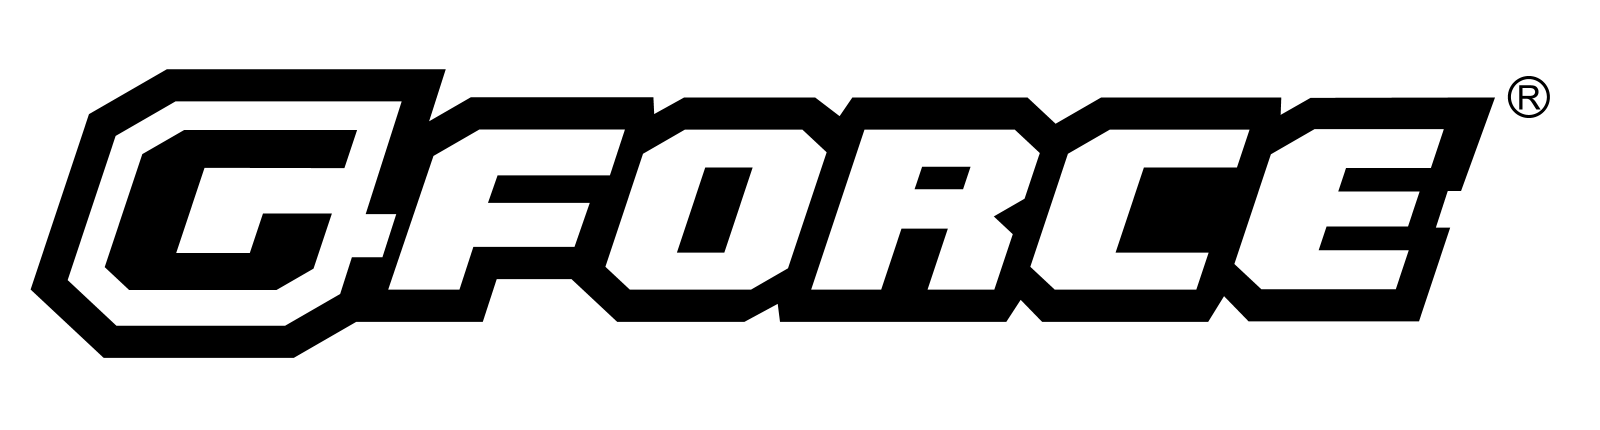 G FORCE LOGO Use On Bright Background